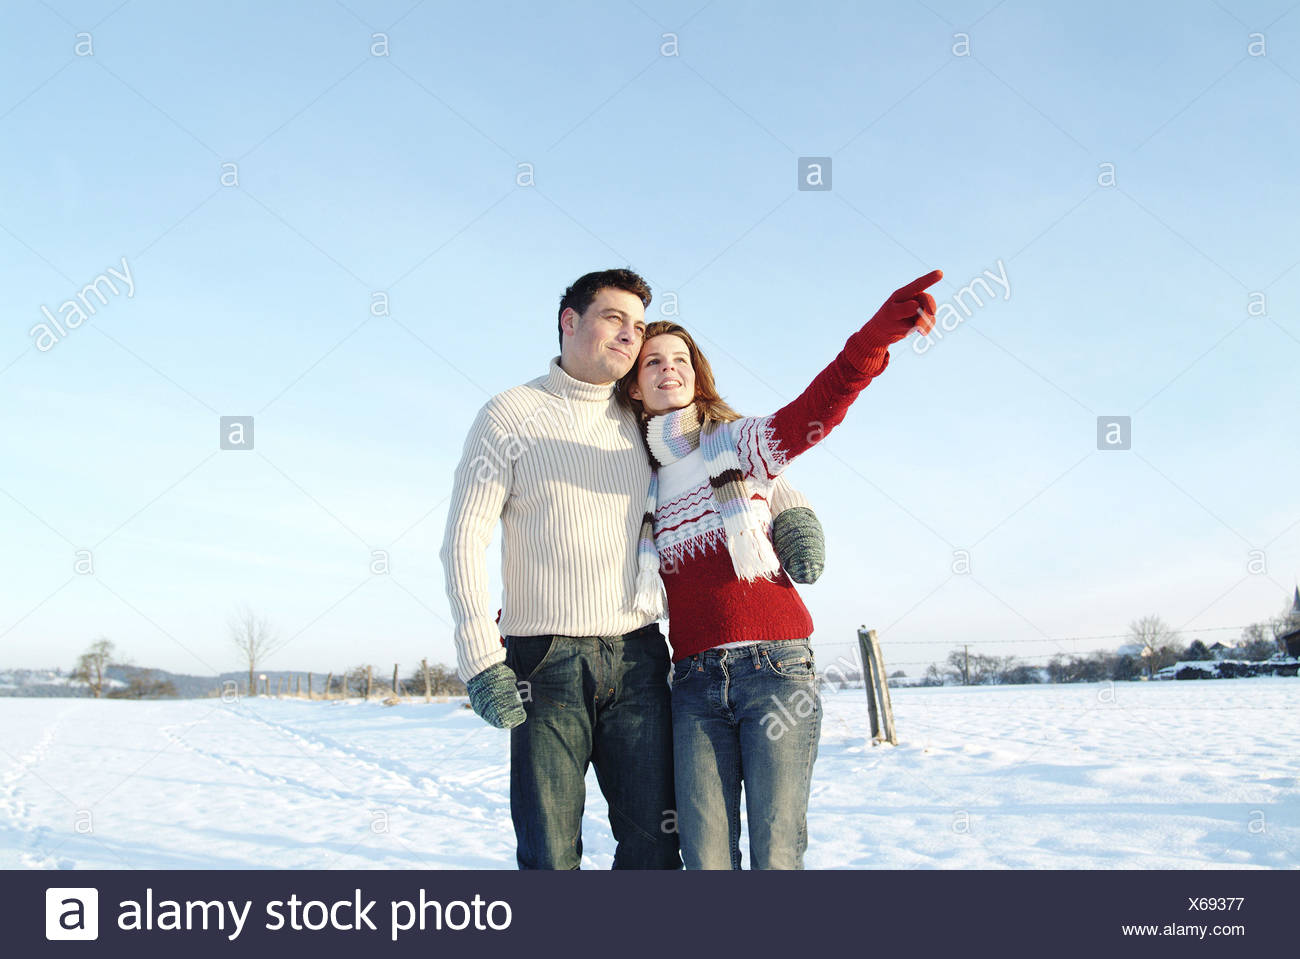 Mate young falls in love cheerfully woman gesture interprets gaze distance walk winter-landscape people two 30-40 years - Stock Image